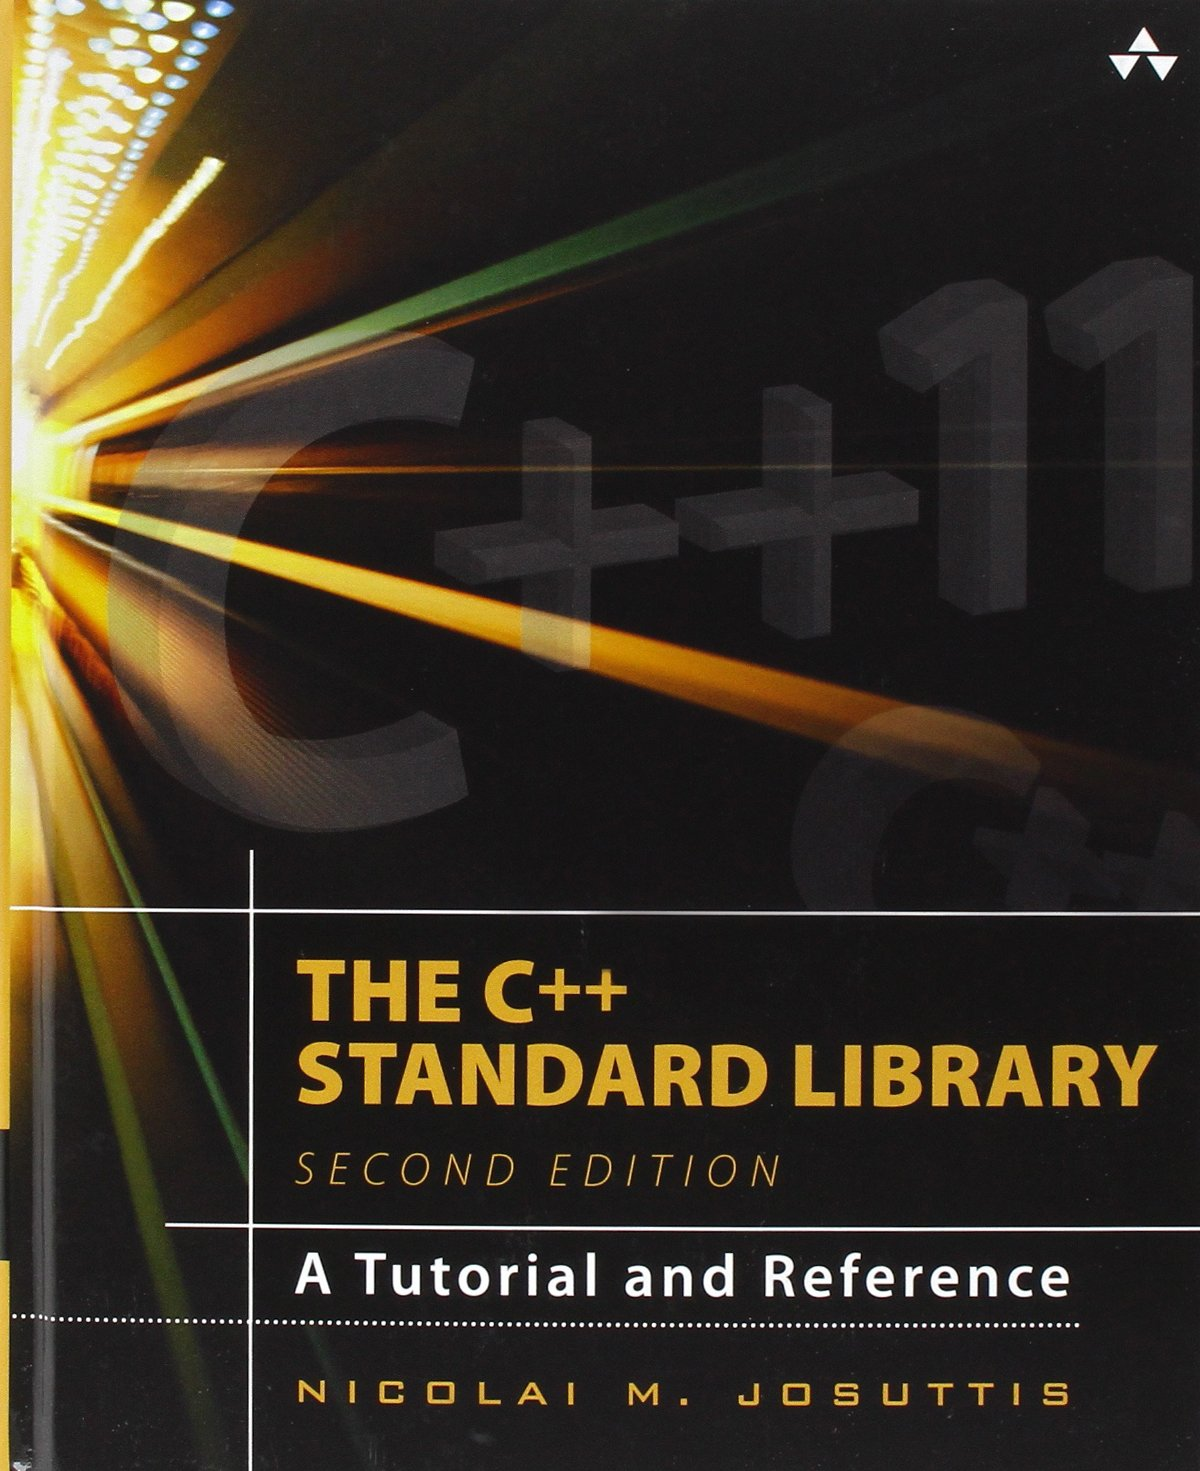 The C++ Standard Library: A Tutorial and Reference: Amazon